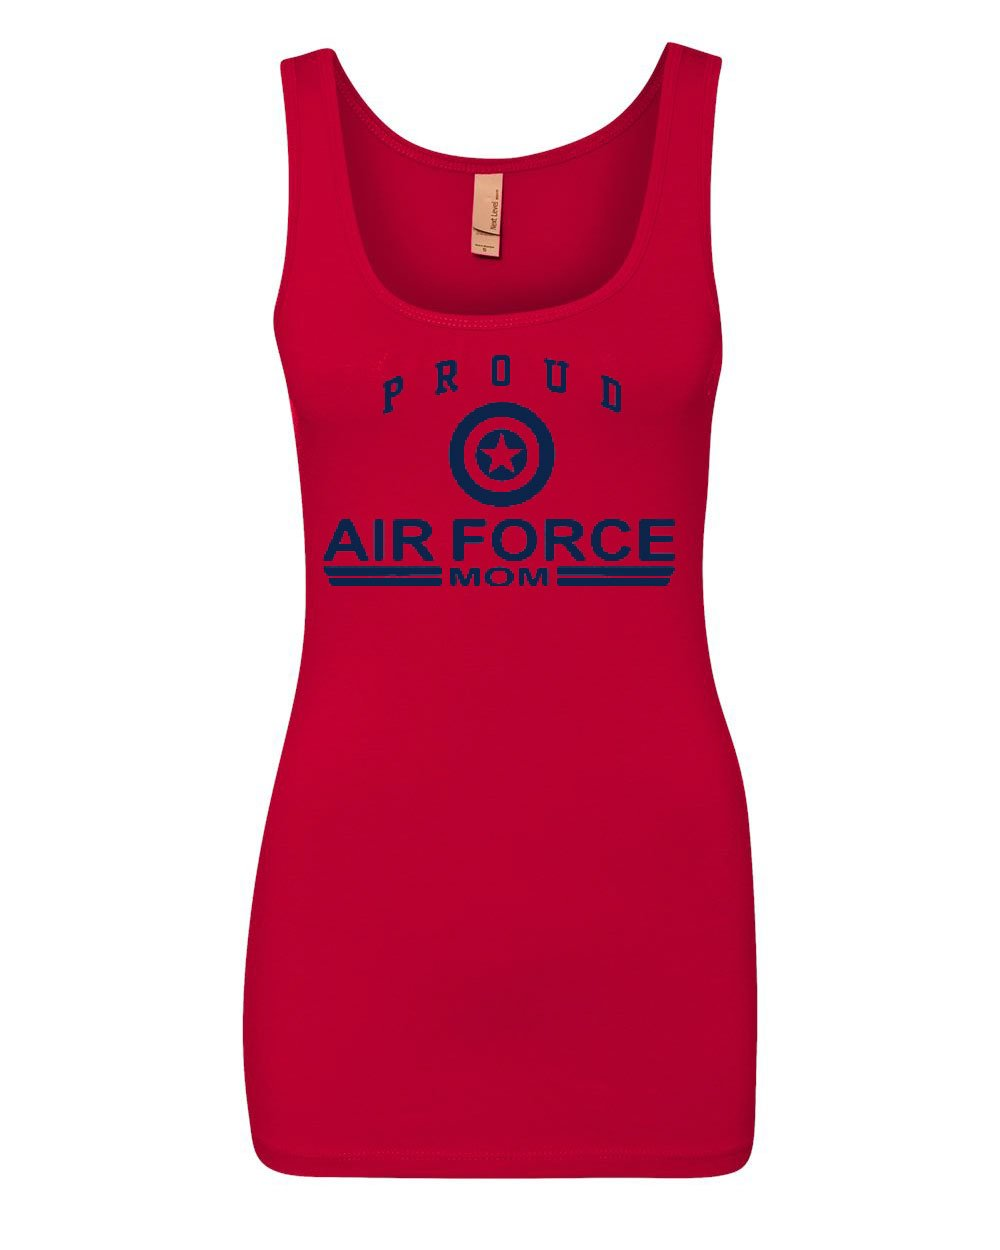 Tee Hunt Proud Air Force Mom Tank Top Proud Air Force Mom Top 9477 Shirts